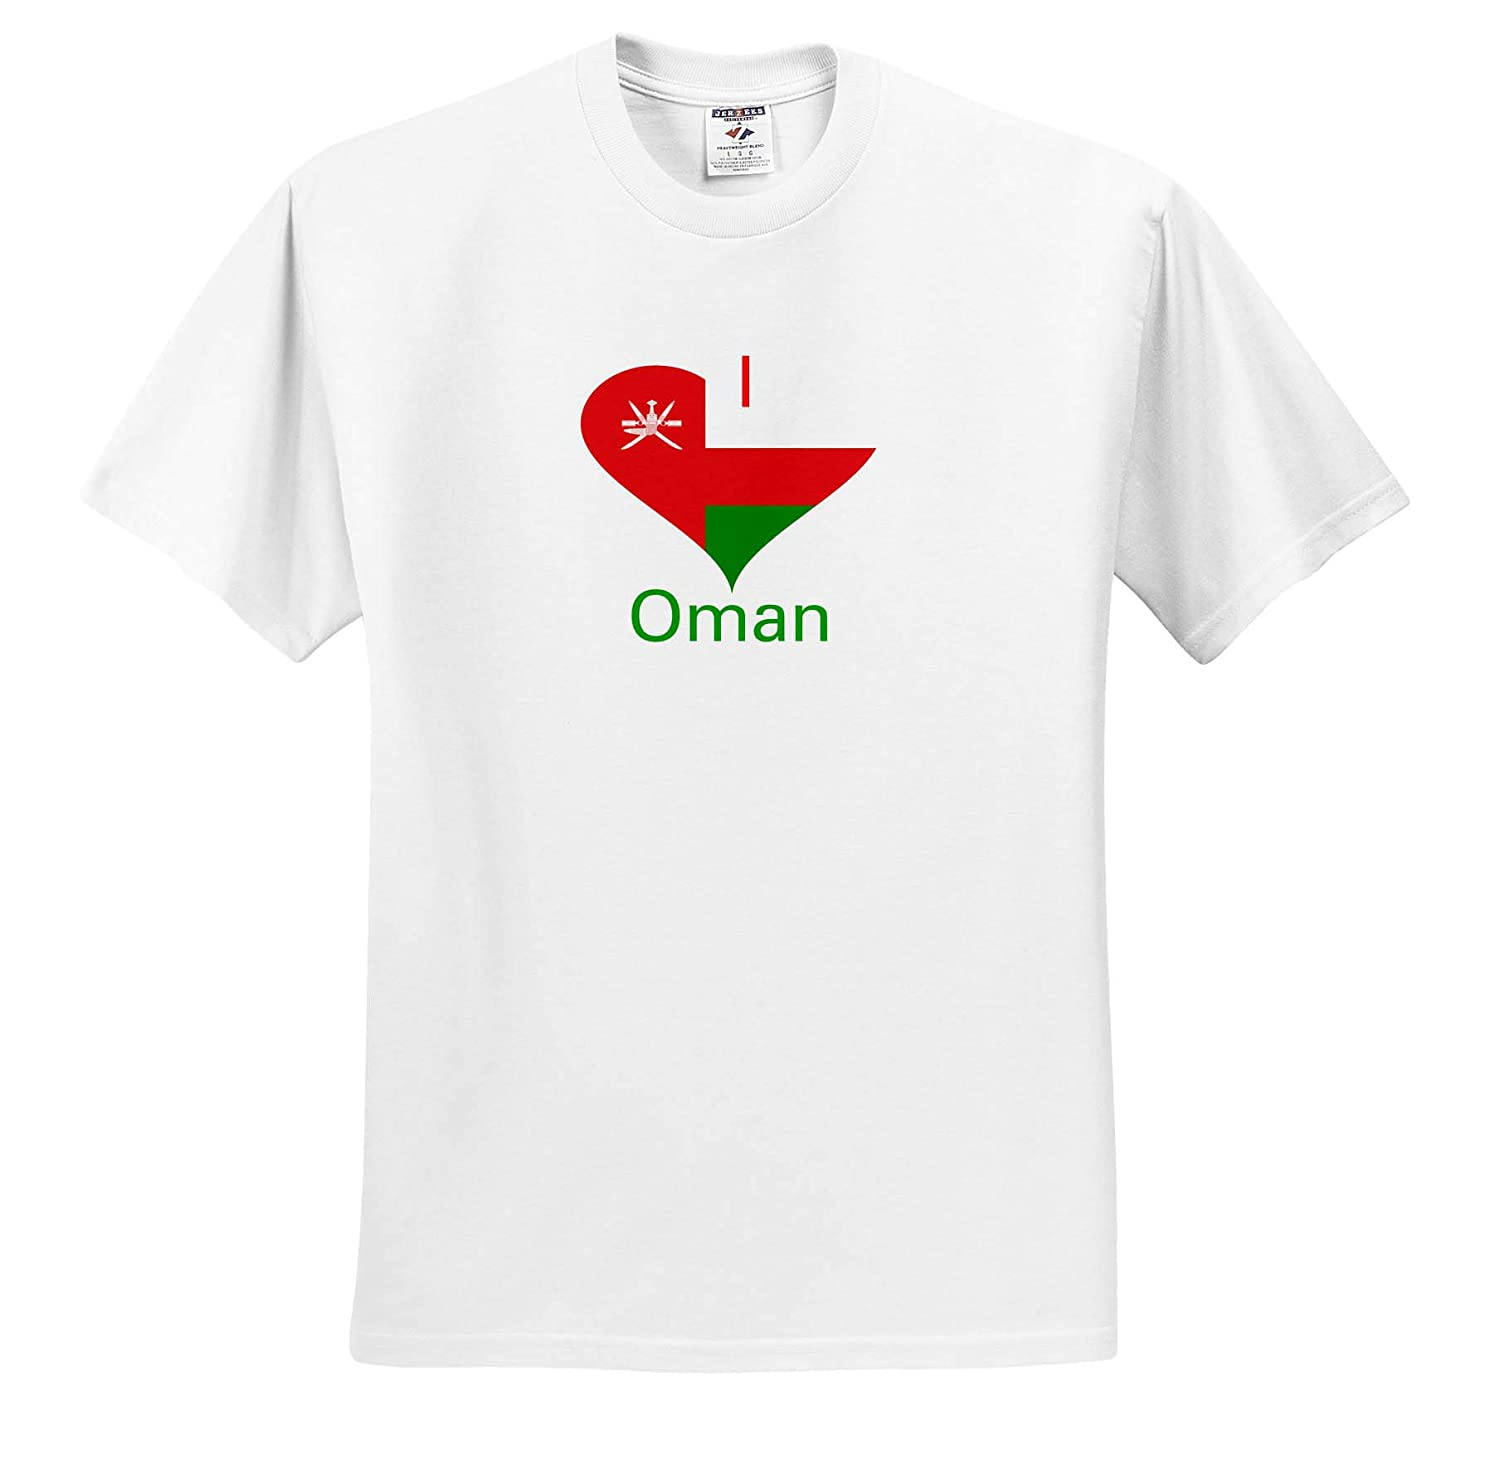 3dRose Lens Art by Florene Image of I Love Oman in Coat of Arms Heart T-Shirts Coat of Arms in Heart